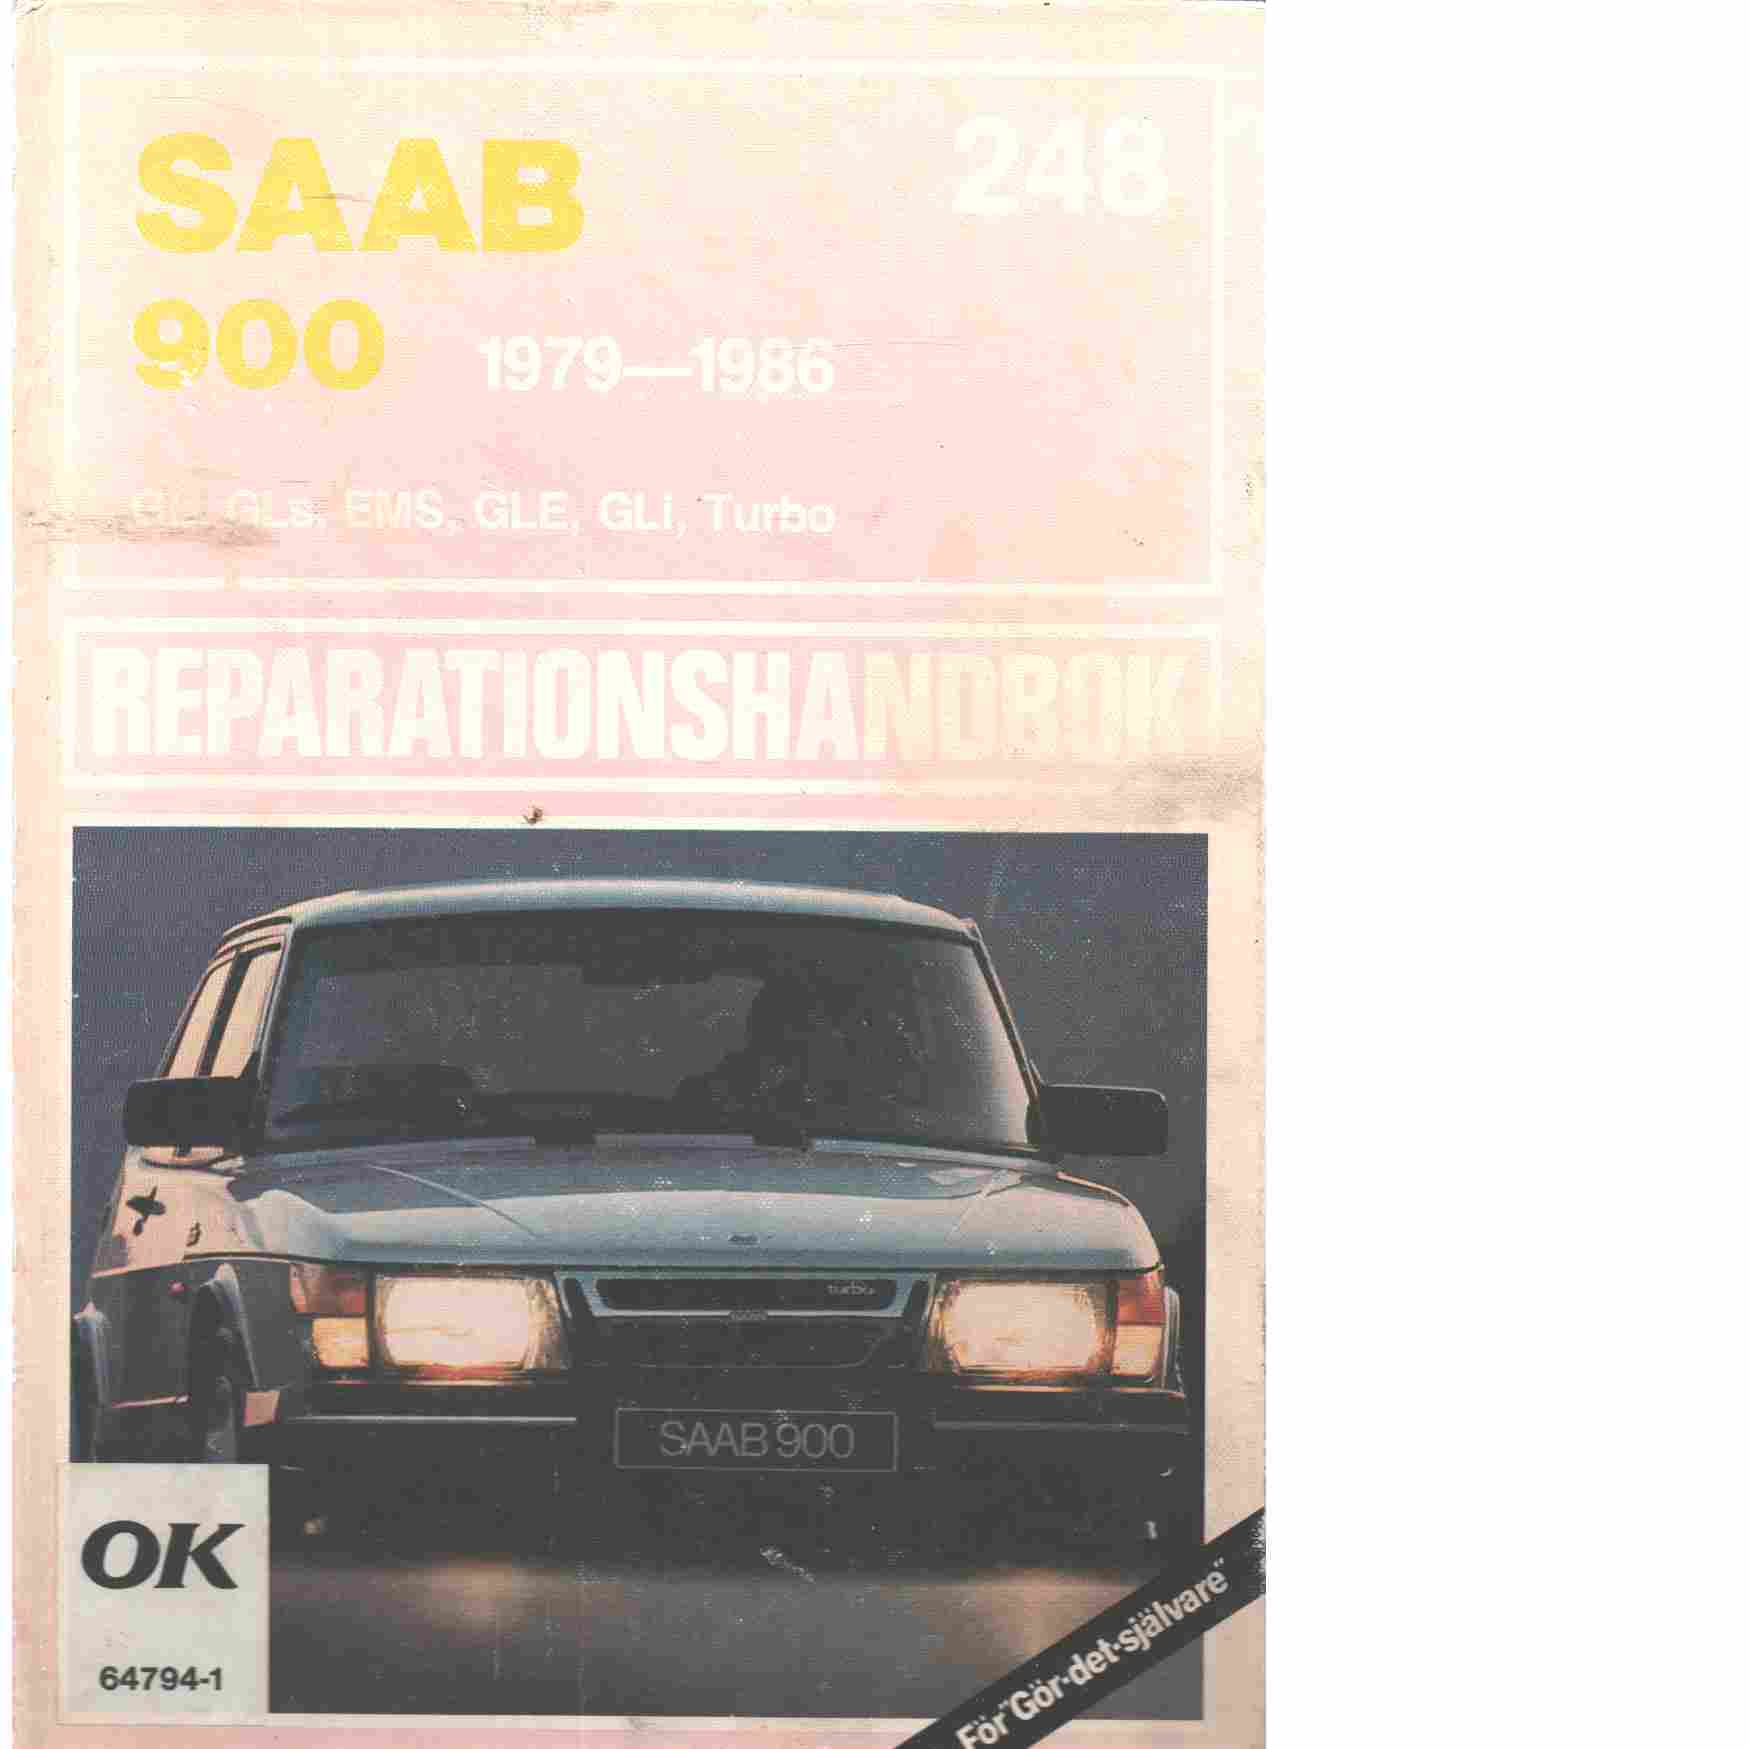 Saab 900 reparationshandbok 1979 - 1986 - Red.